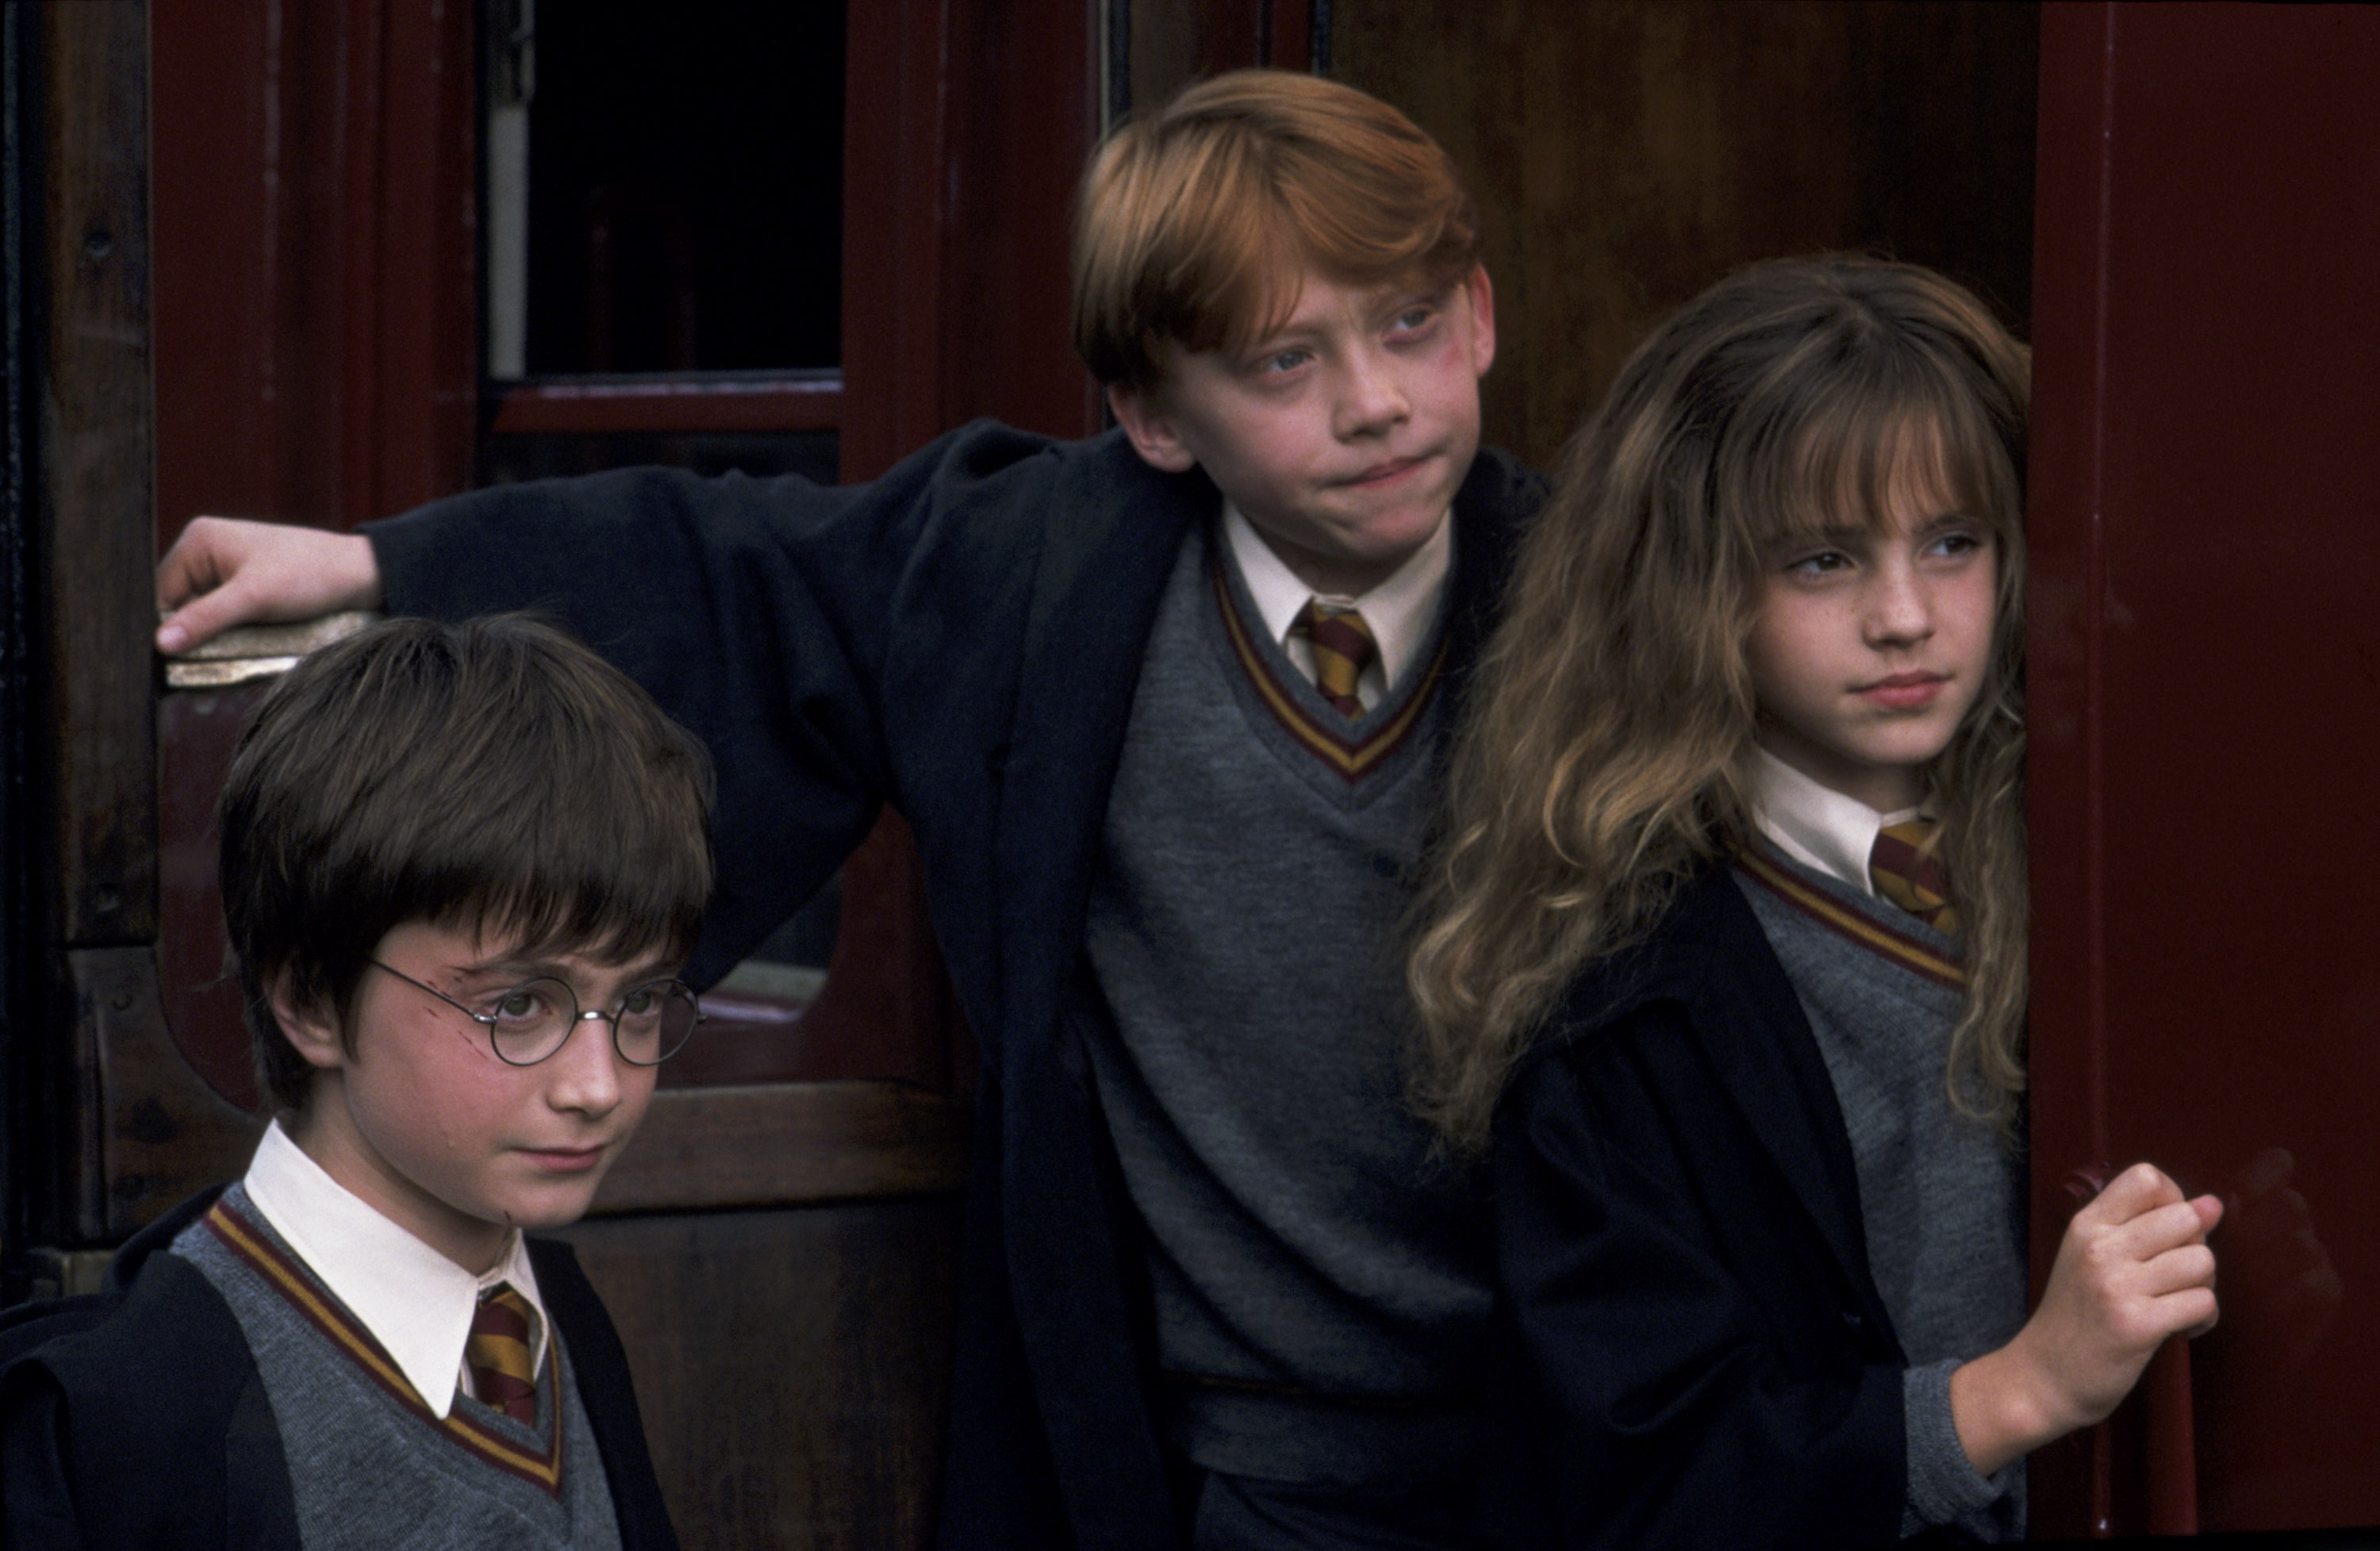 Harry Potter (Daniel Radcliffe), Ron Weasley (Rupert Grint) and Hermione Granger (Emma Watson) in Harry Potter and the Sorcerer's Stone (2001)